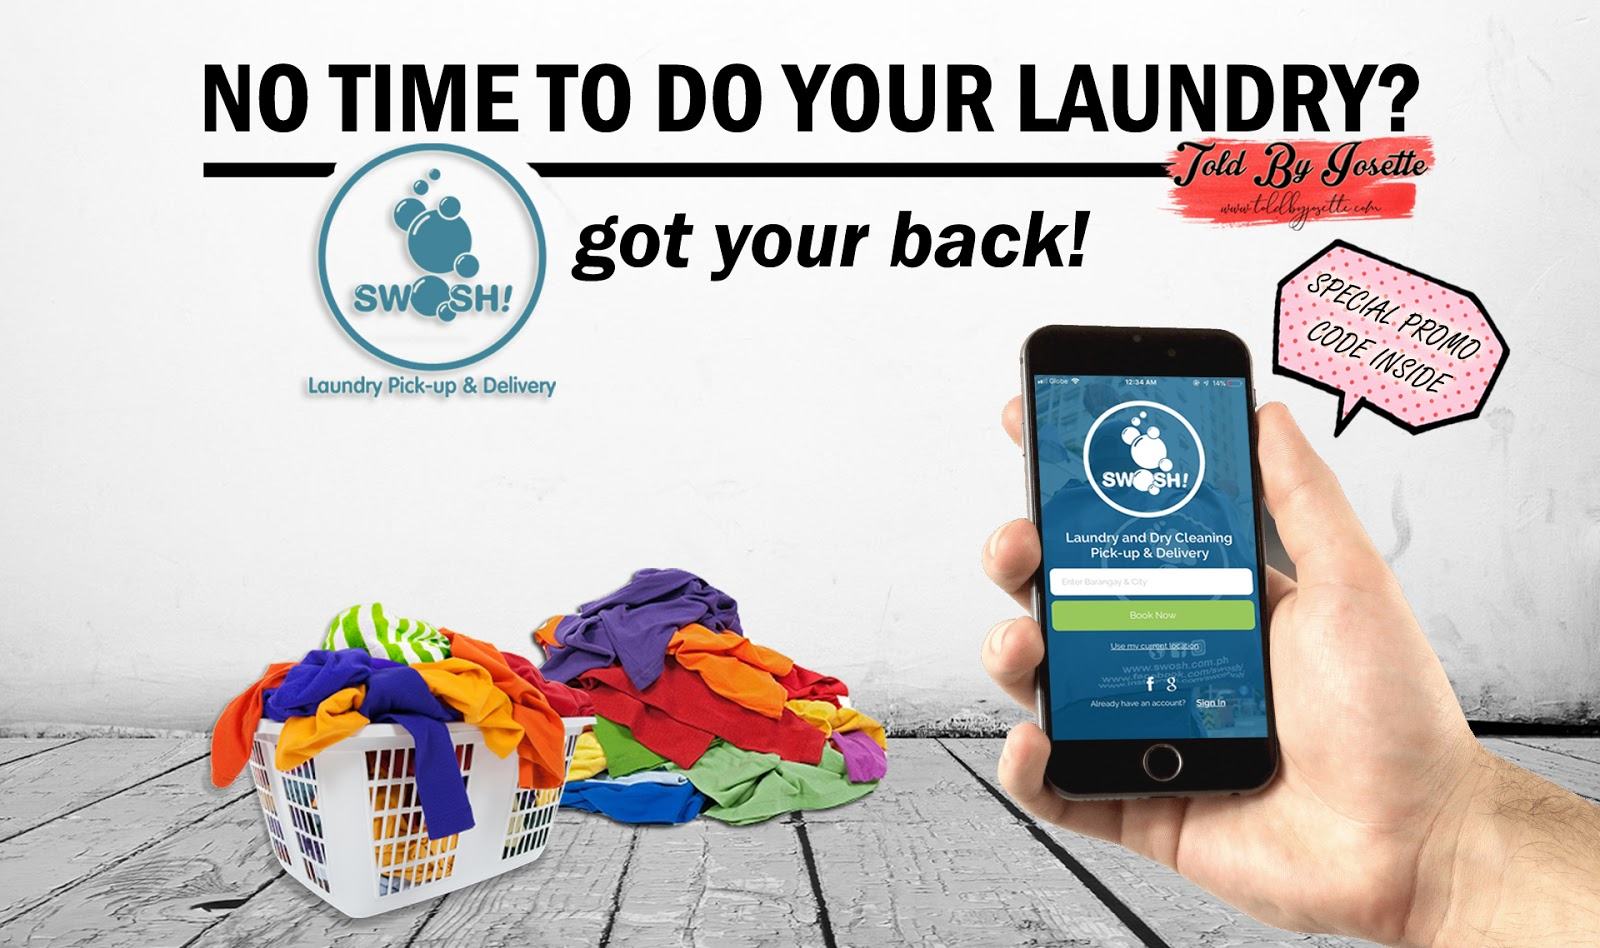 Swosh Laundry Cleaning Mobile App: Making Laundry Less of Your Worries!